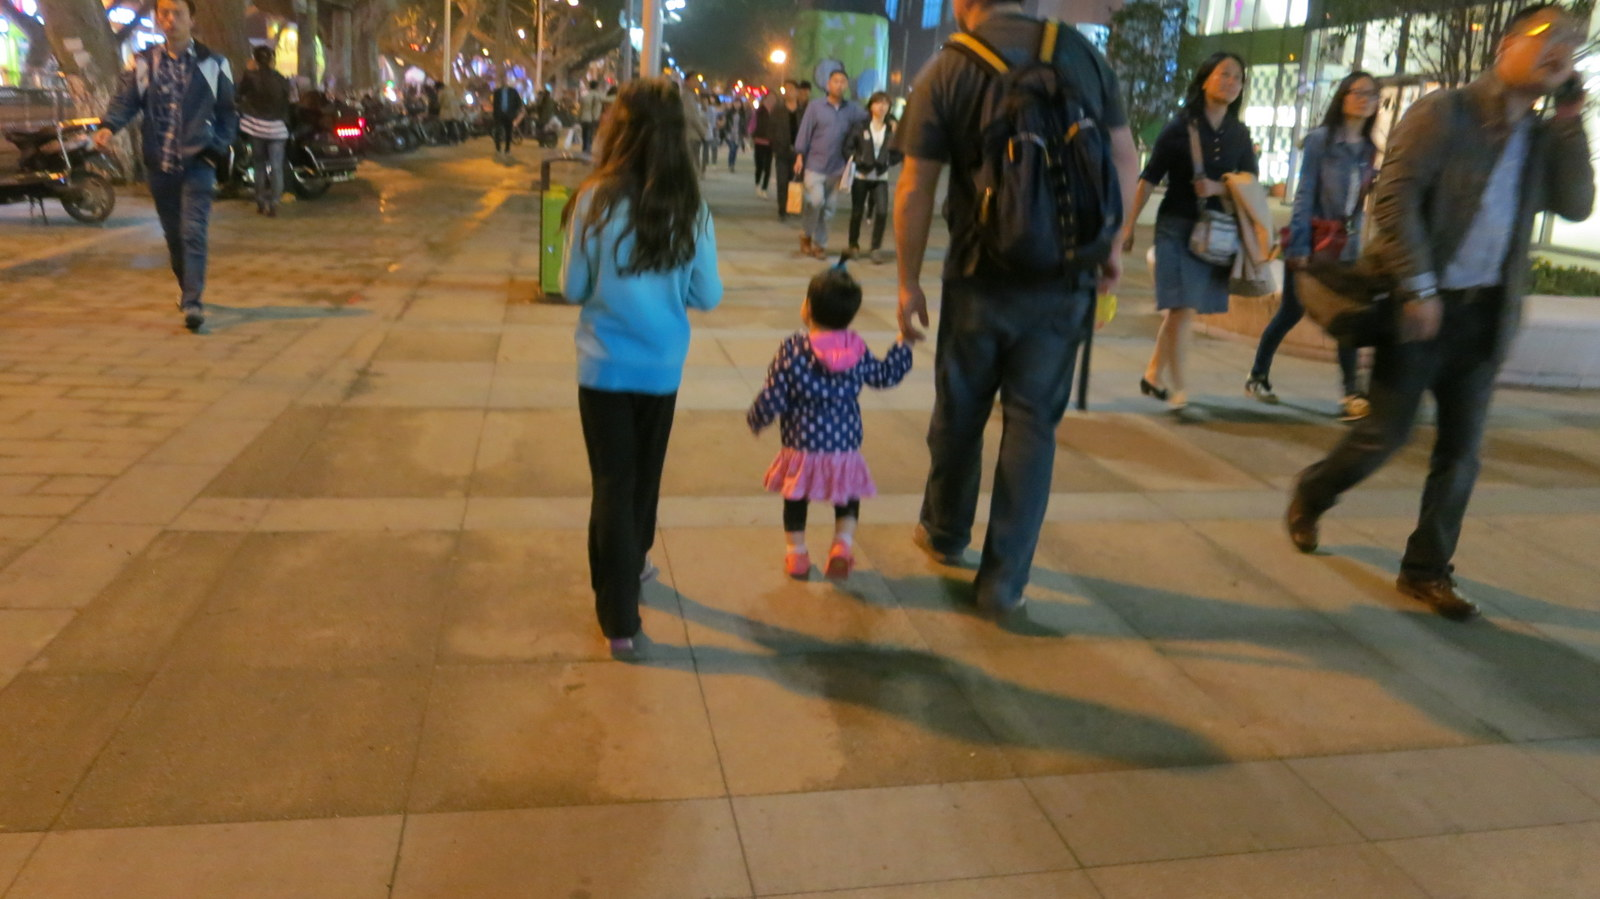 Yesterday she would not walk anywhere unless attached to my finger. Tonight, she's a daddy's girl. Beautiful!